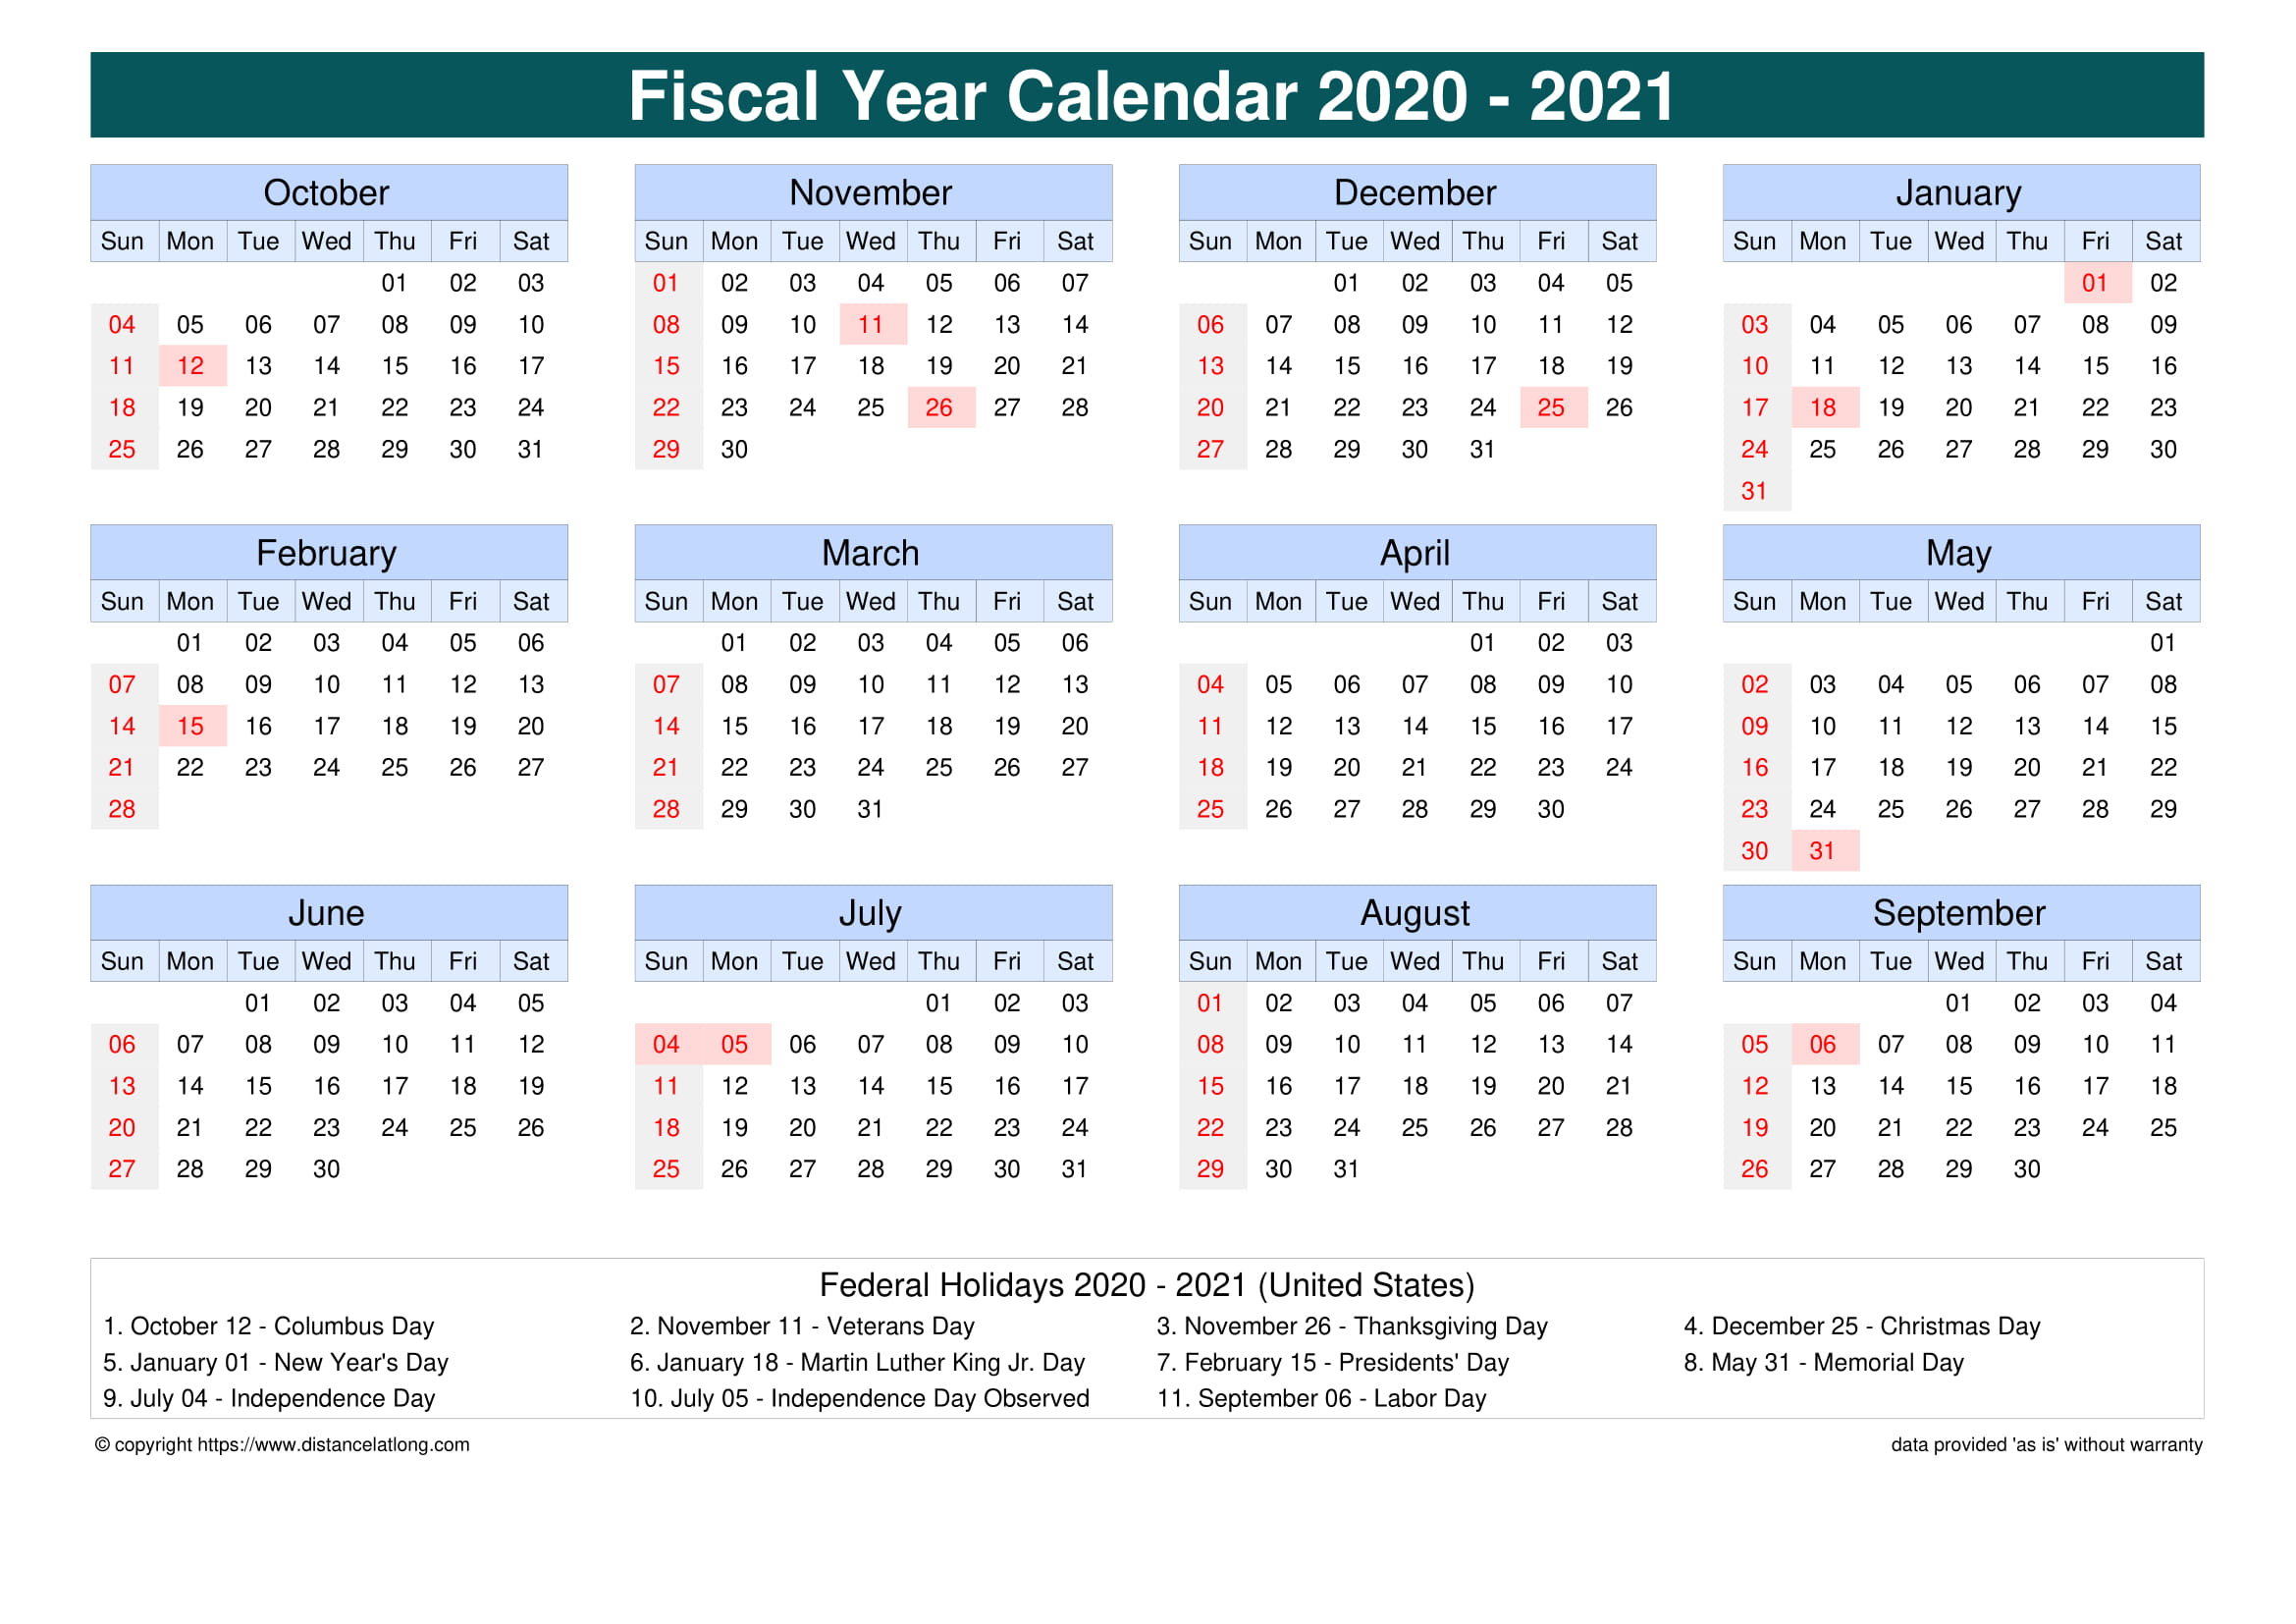 Fiscal Year 2020-2021 Calendar Templates, Free Printable within Fiscal Calendar For October 2020